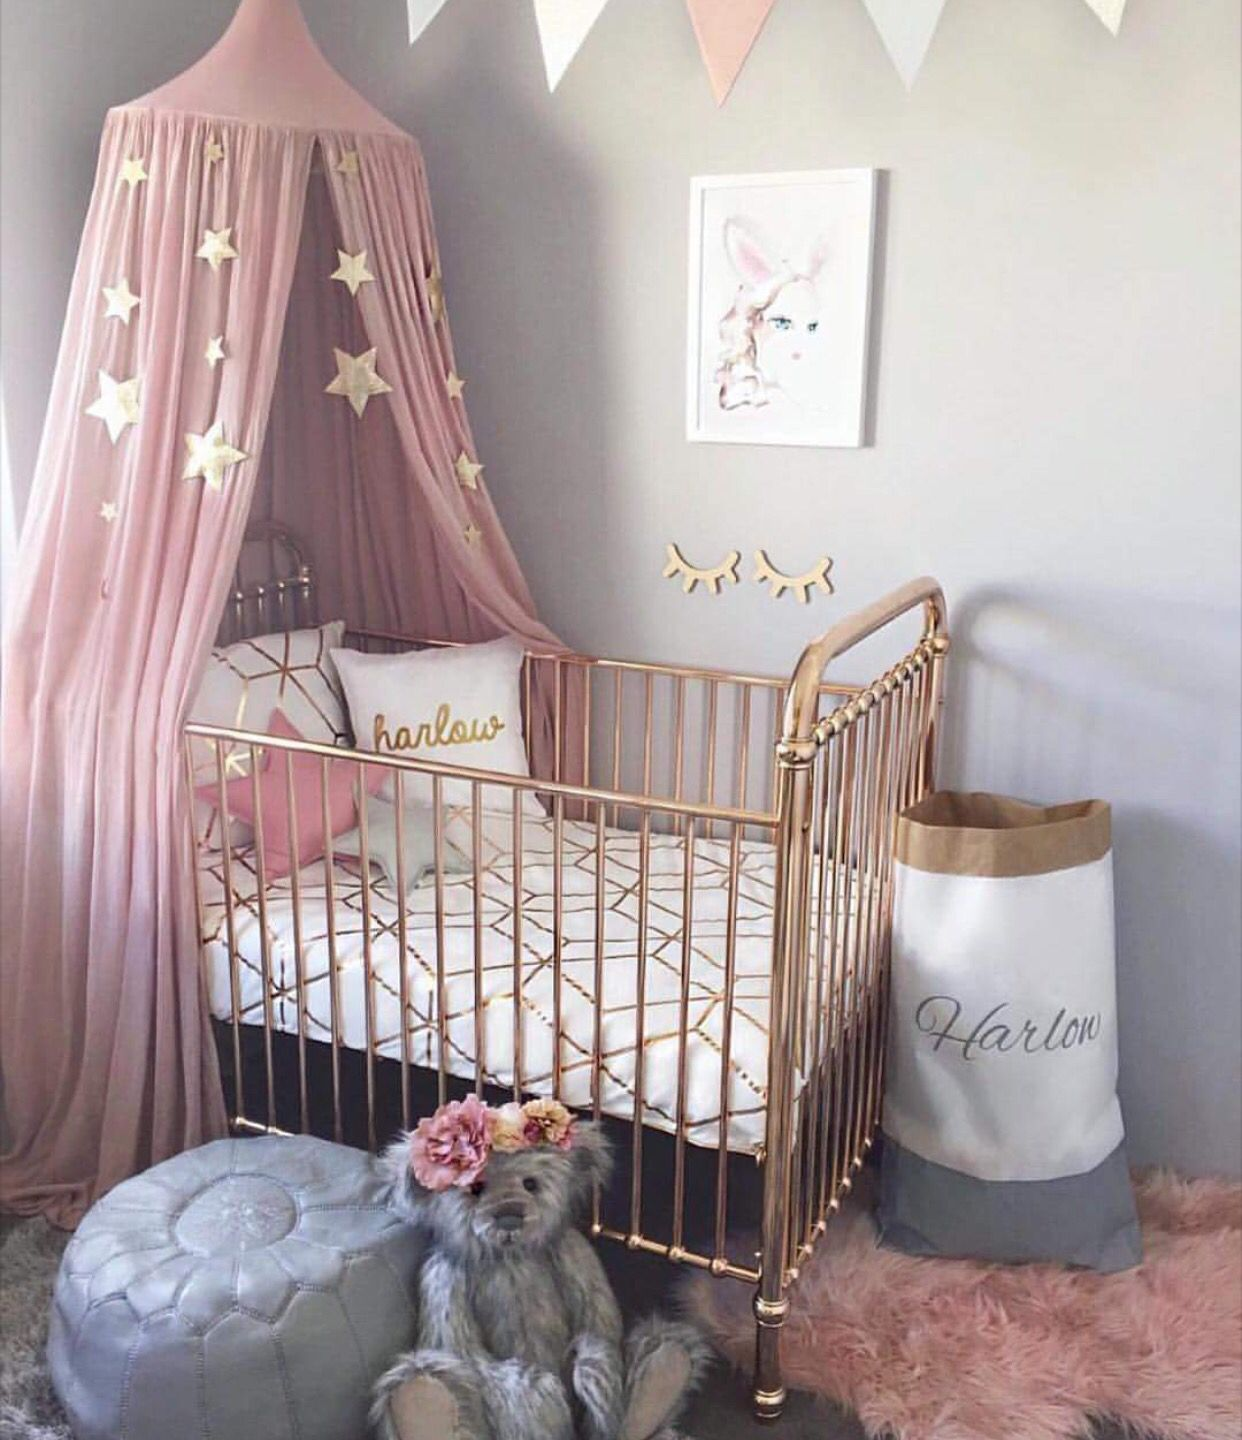 Pin de Aimee Jackson en For the Kids | Pinterest | Decoración para ...